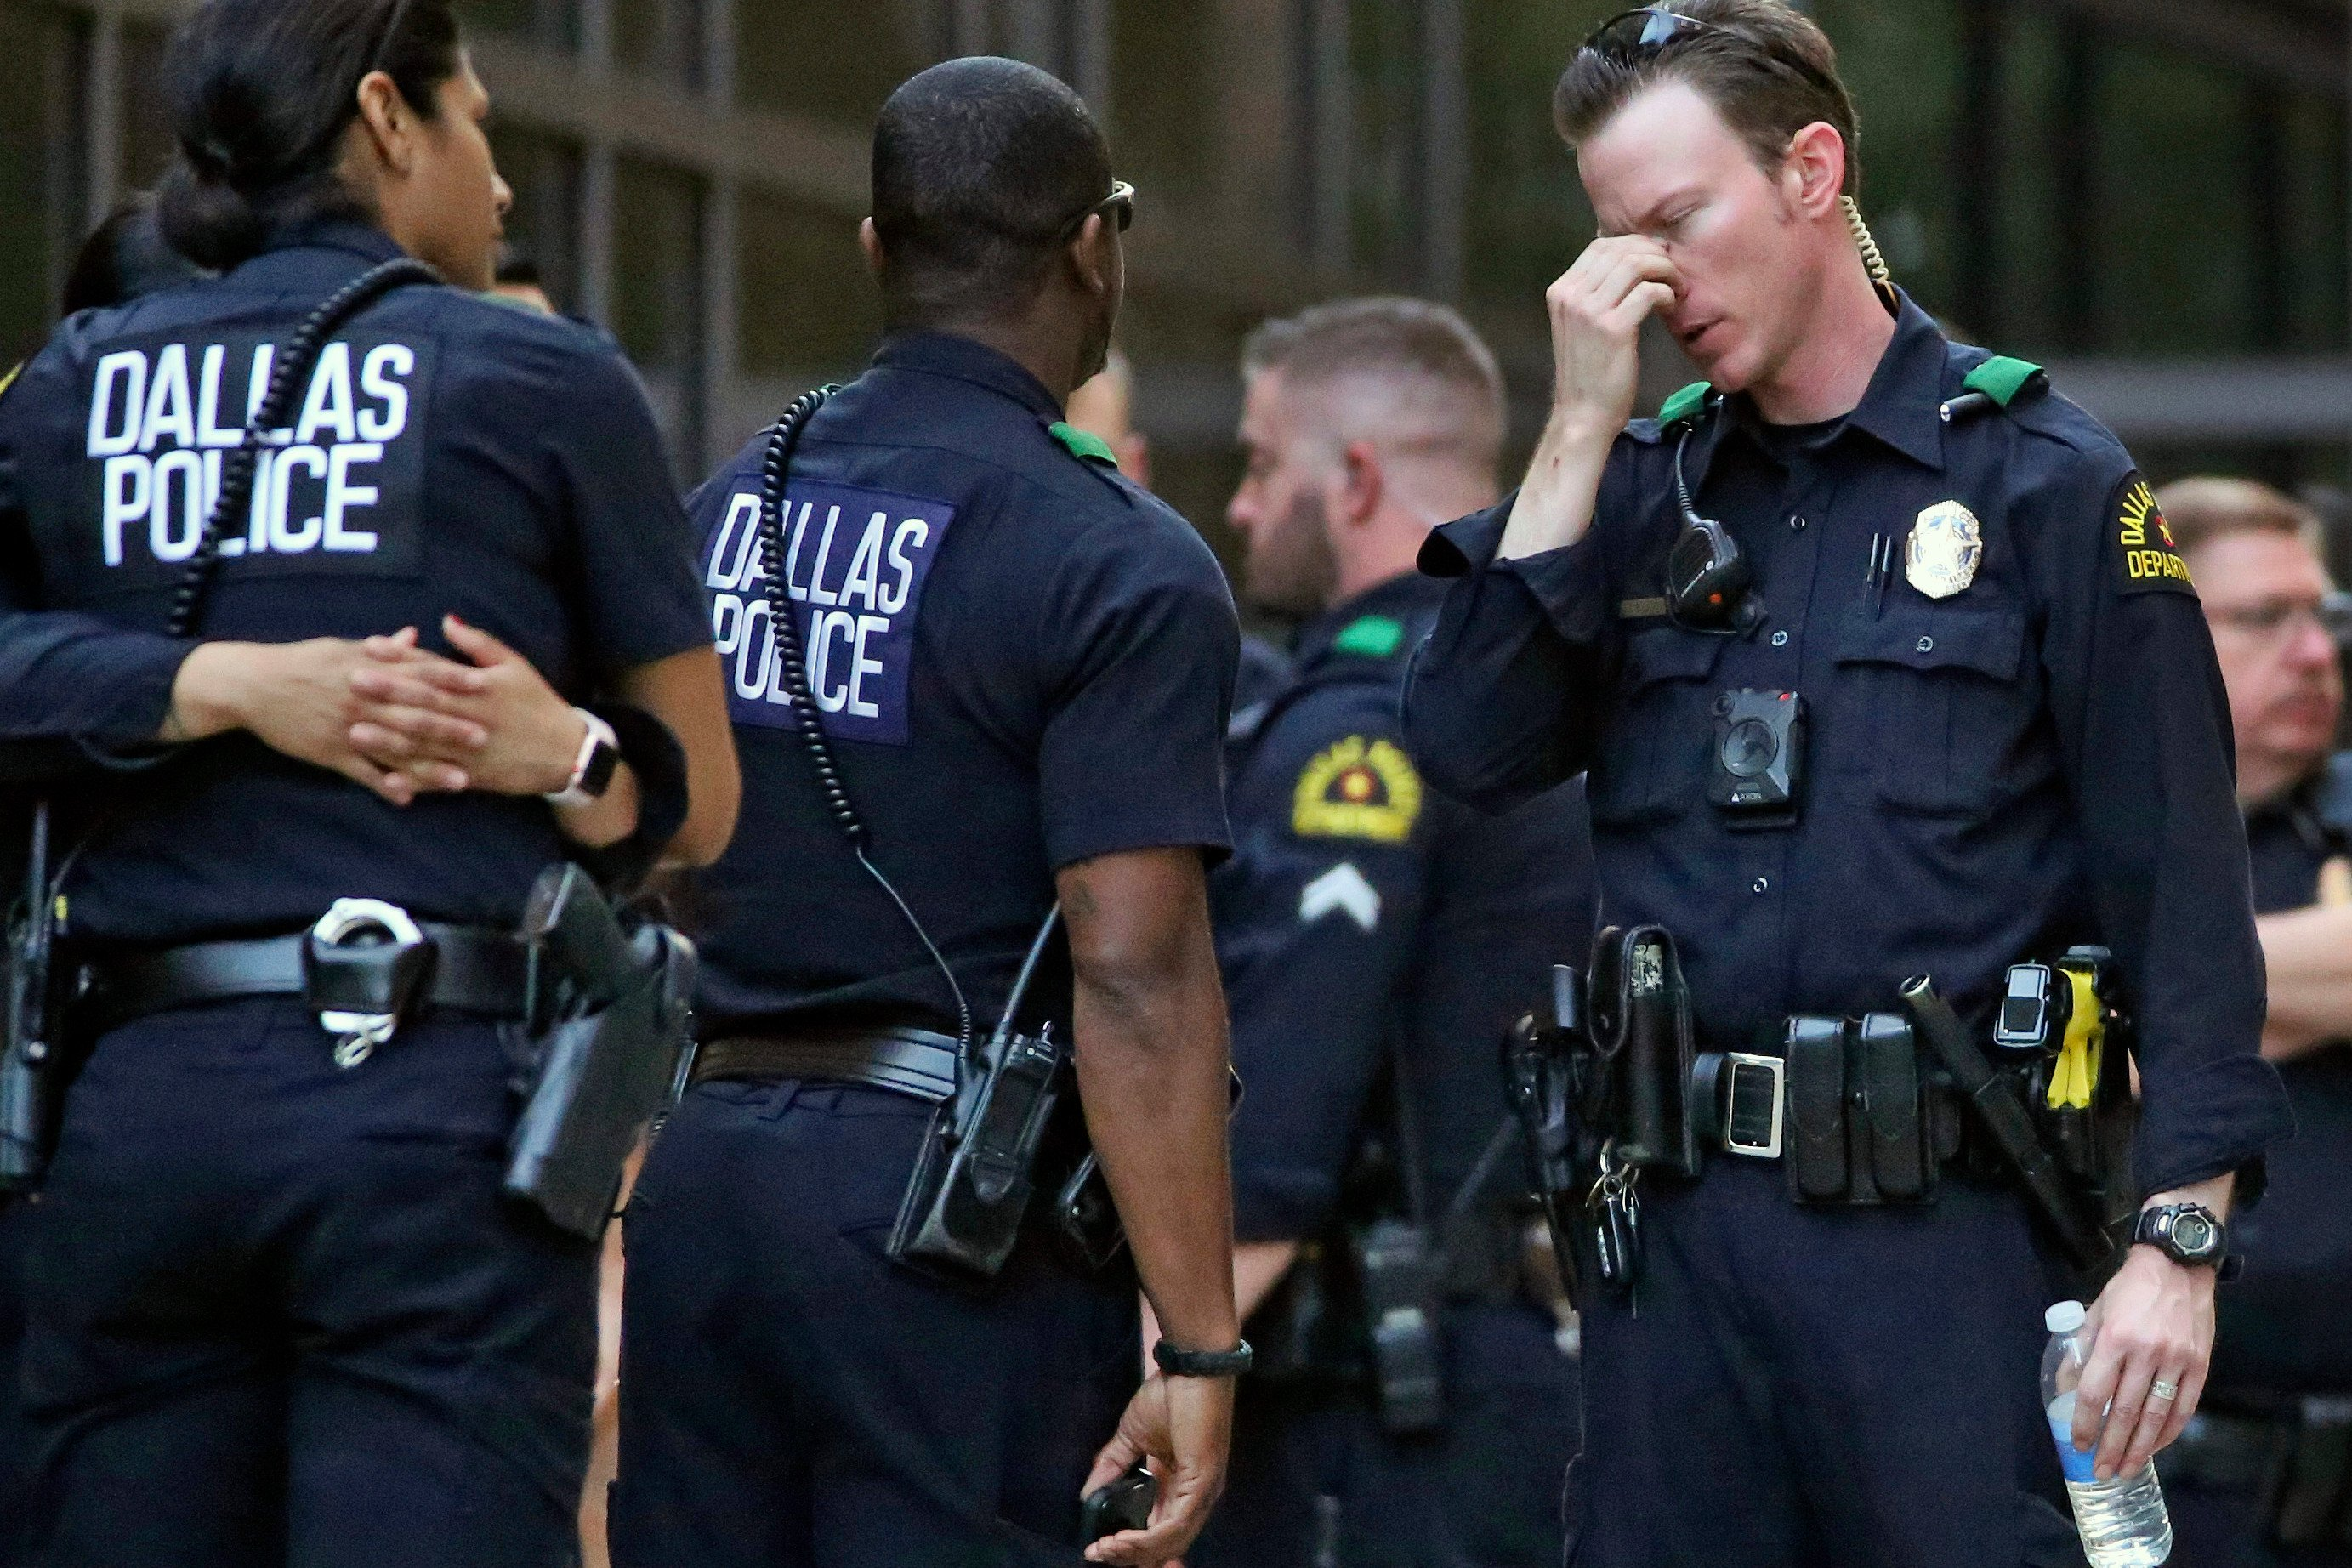 Suspect arrested in shooting of two Dallas officers